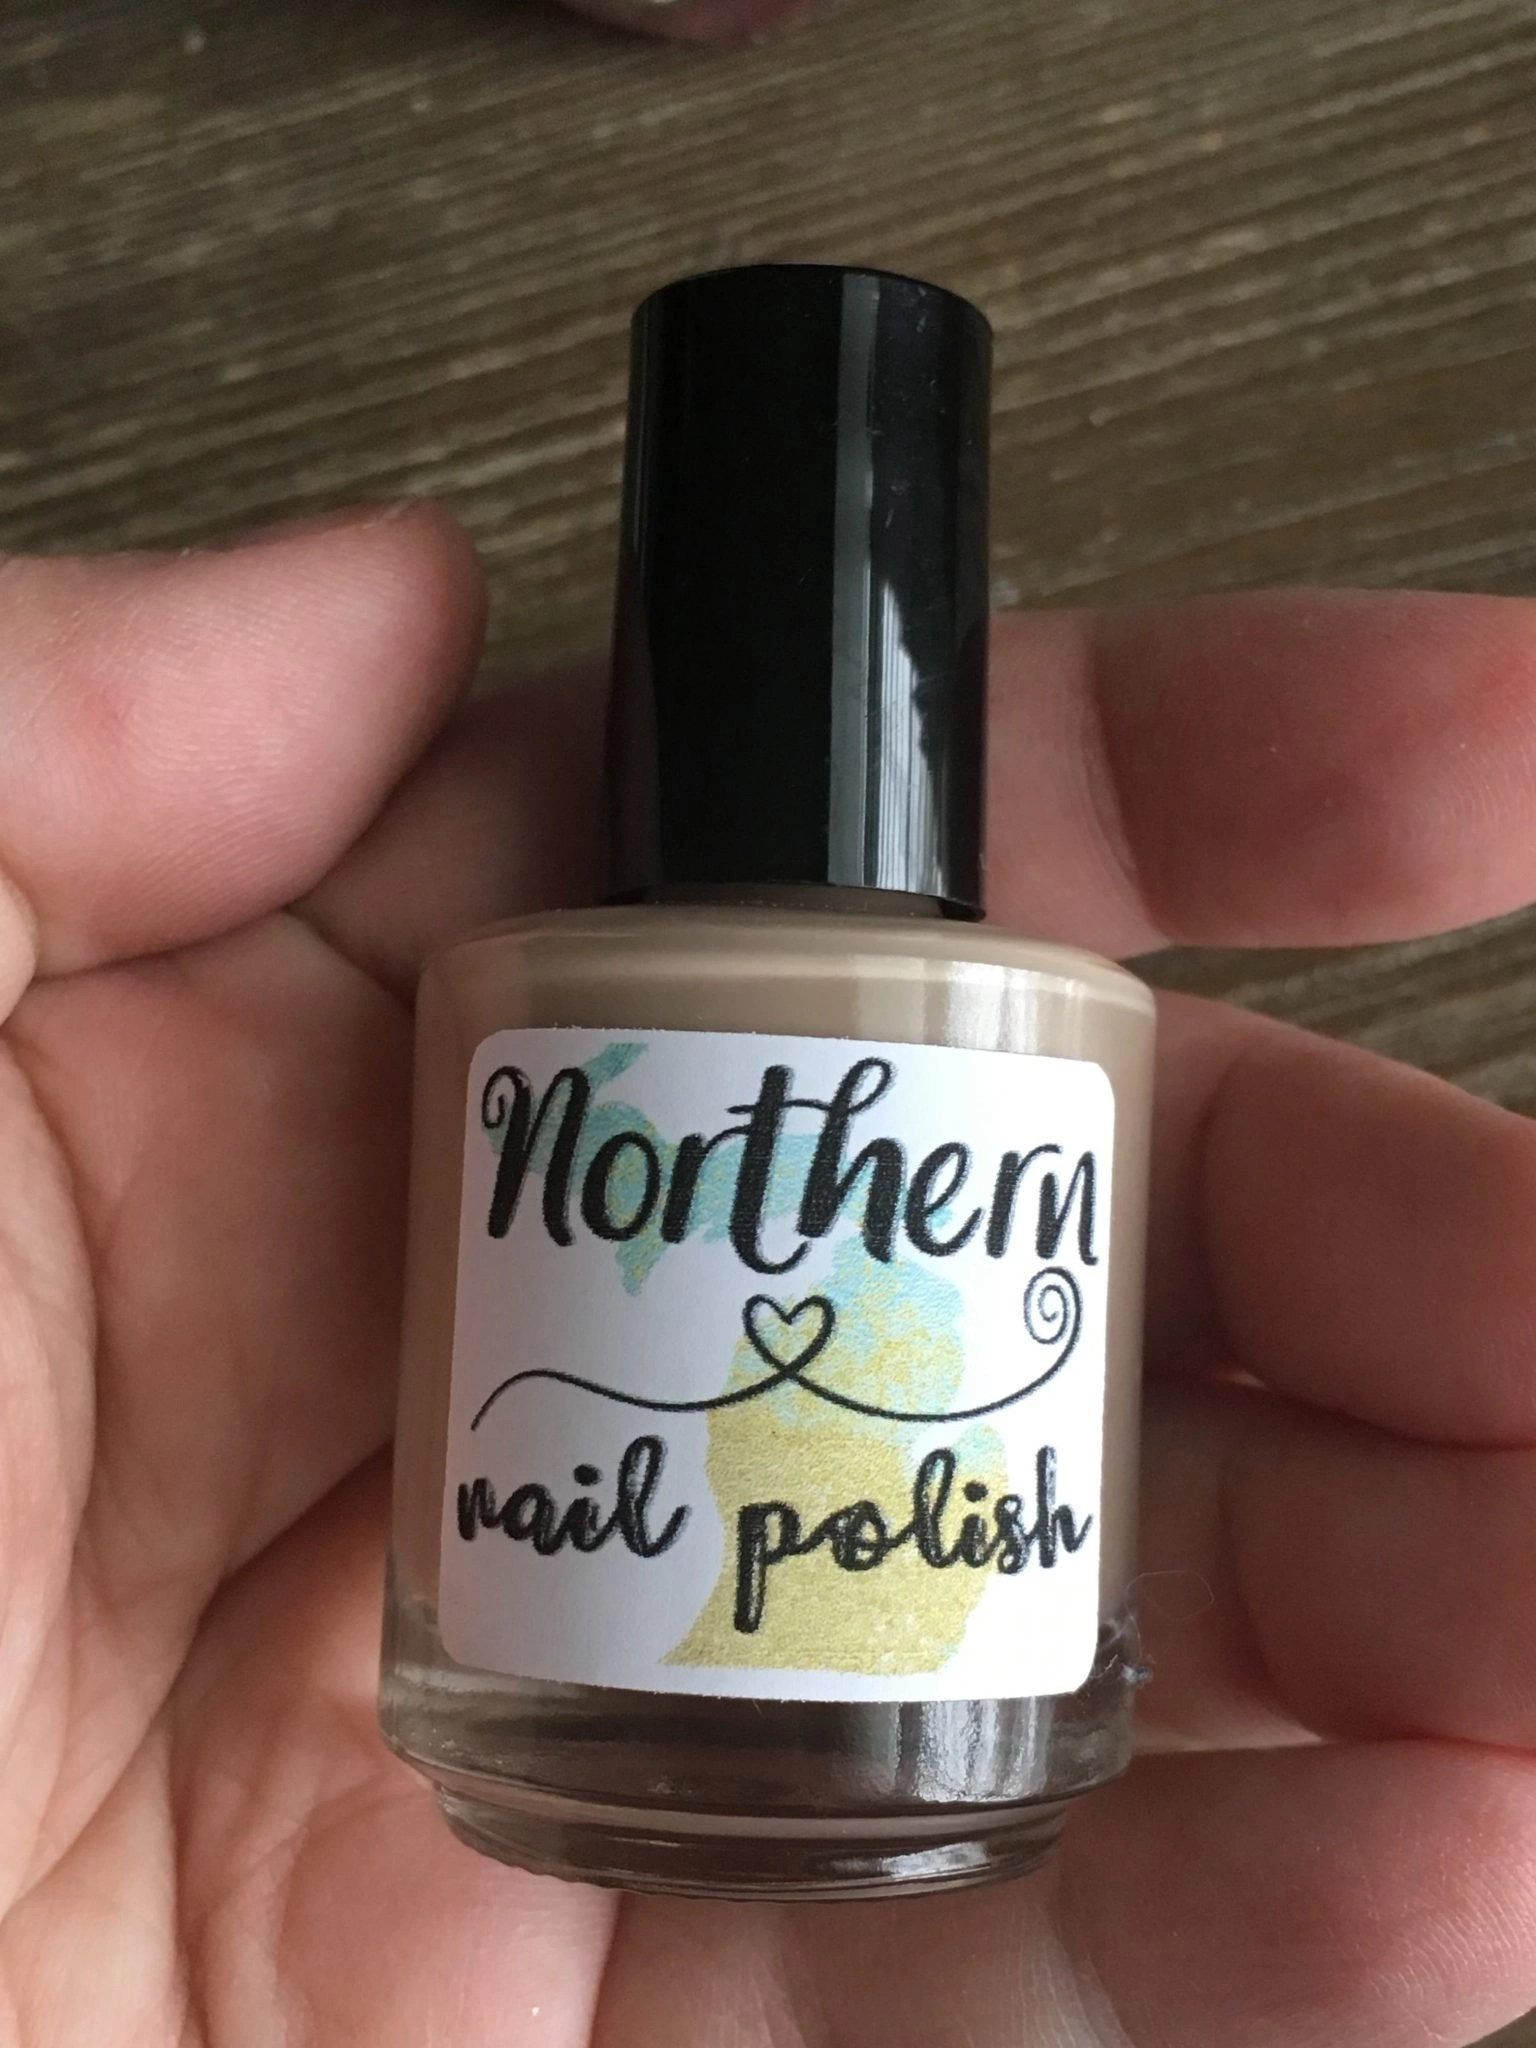 Northern Nail Polish in Sand Between my Toes